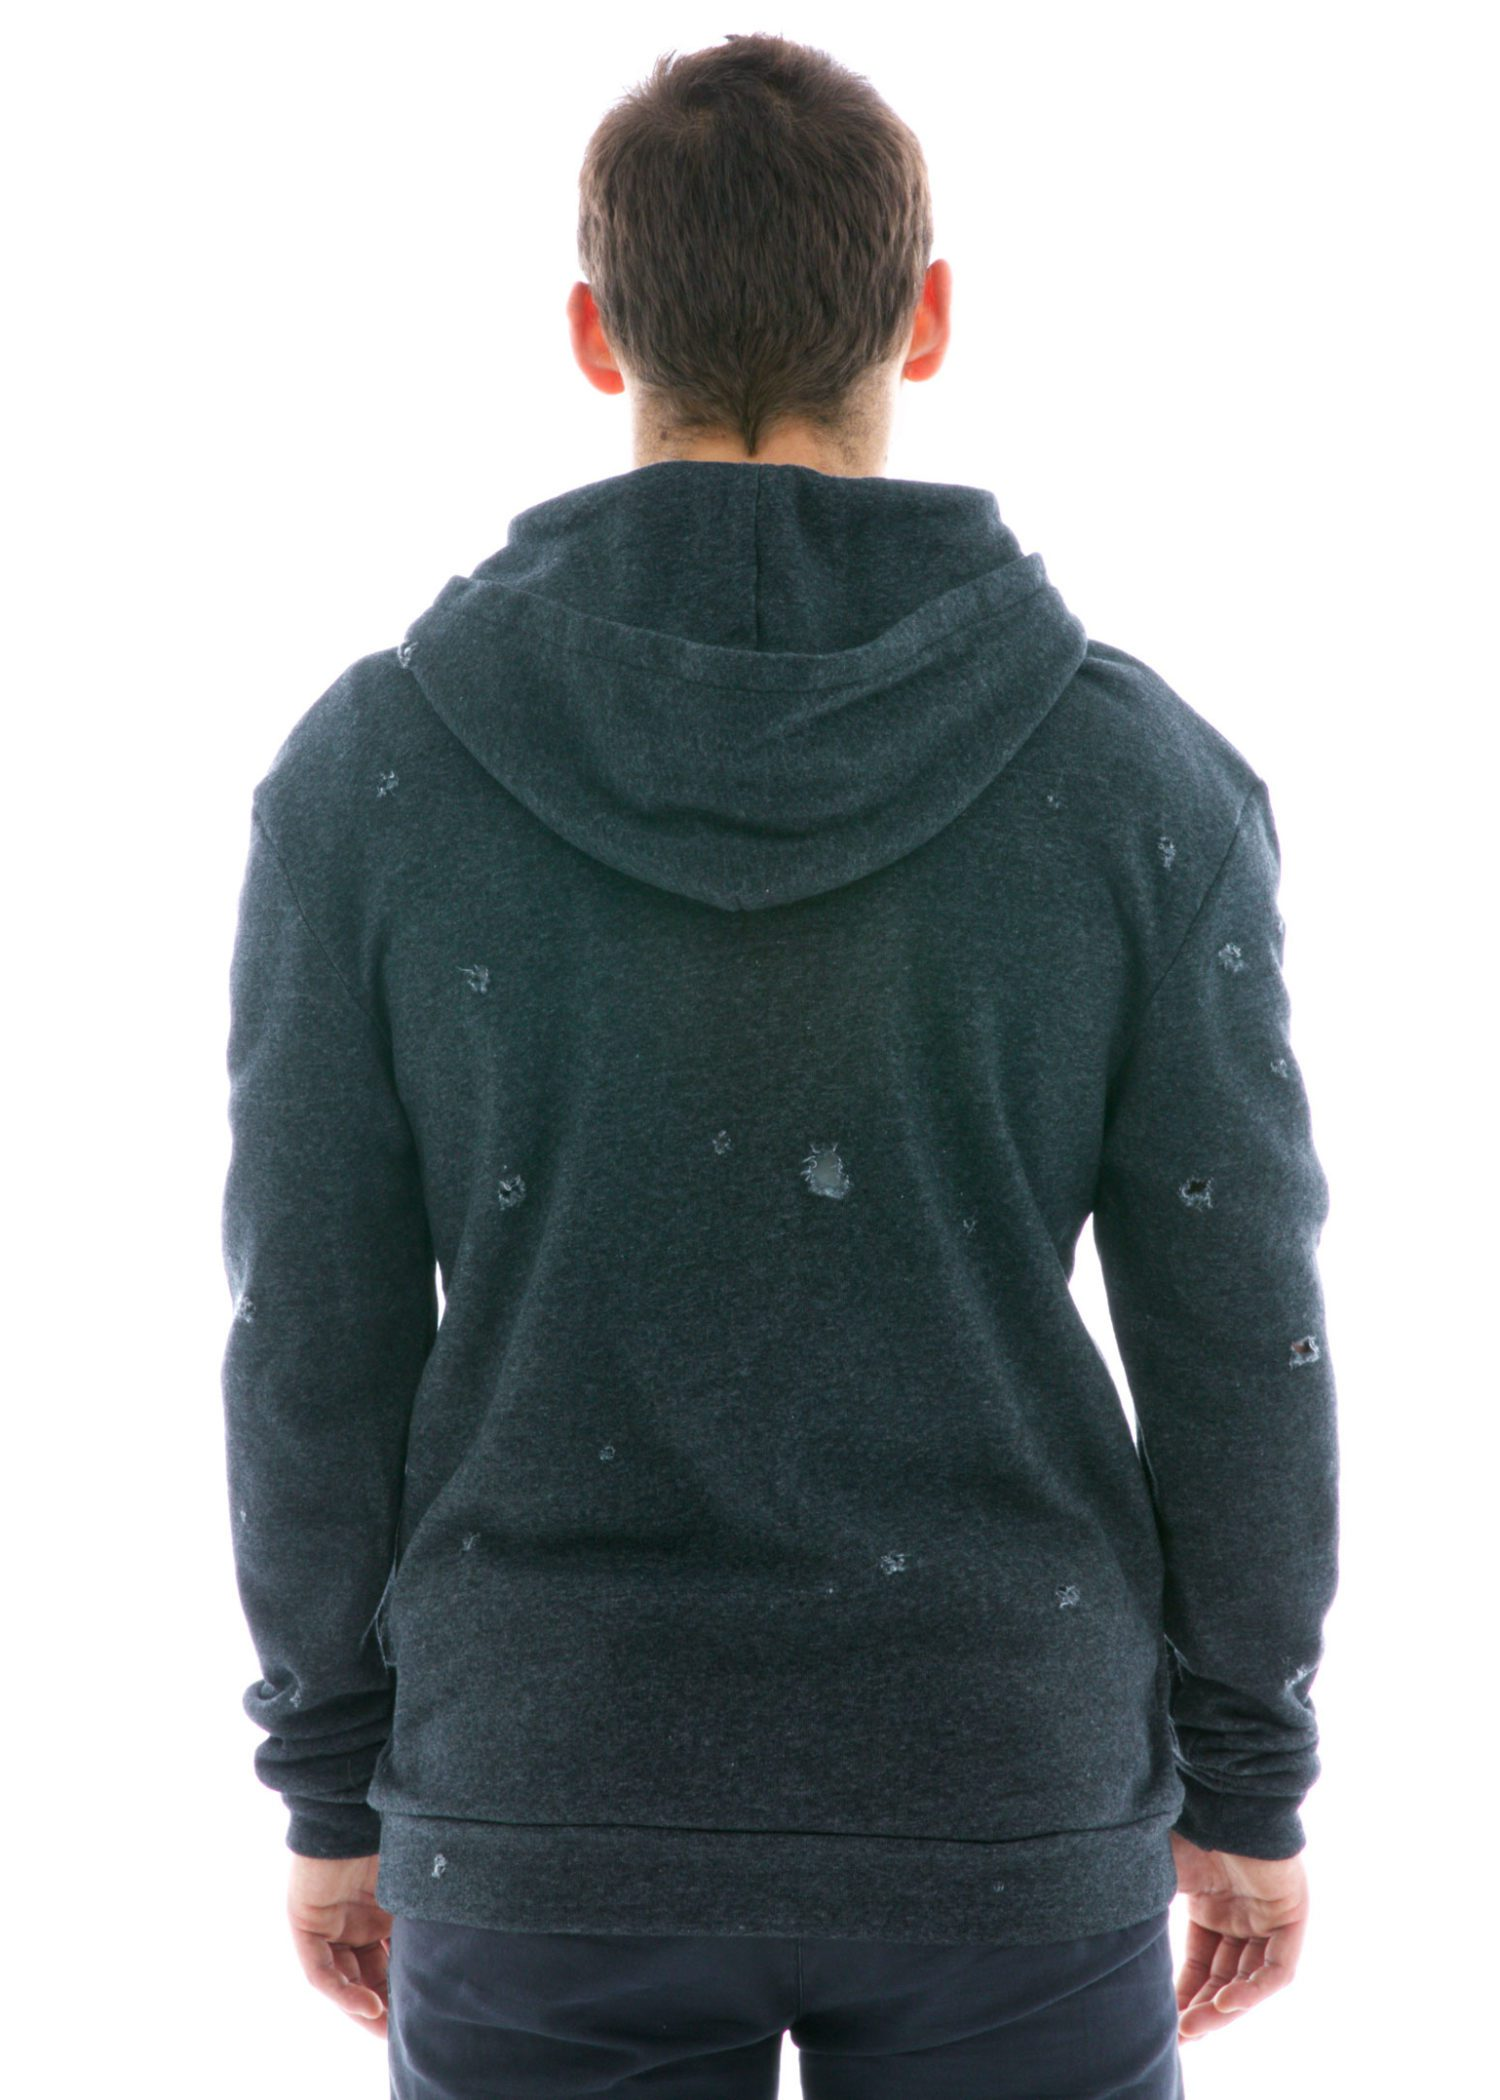 Destroyed Pullover Hoodie Back View